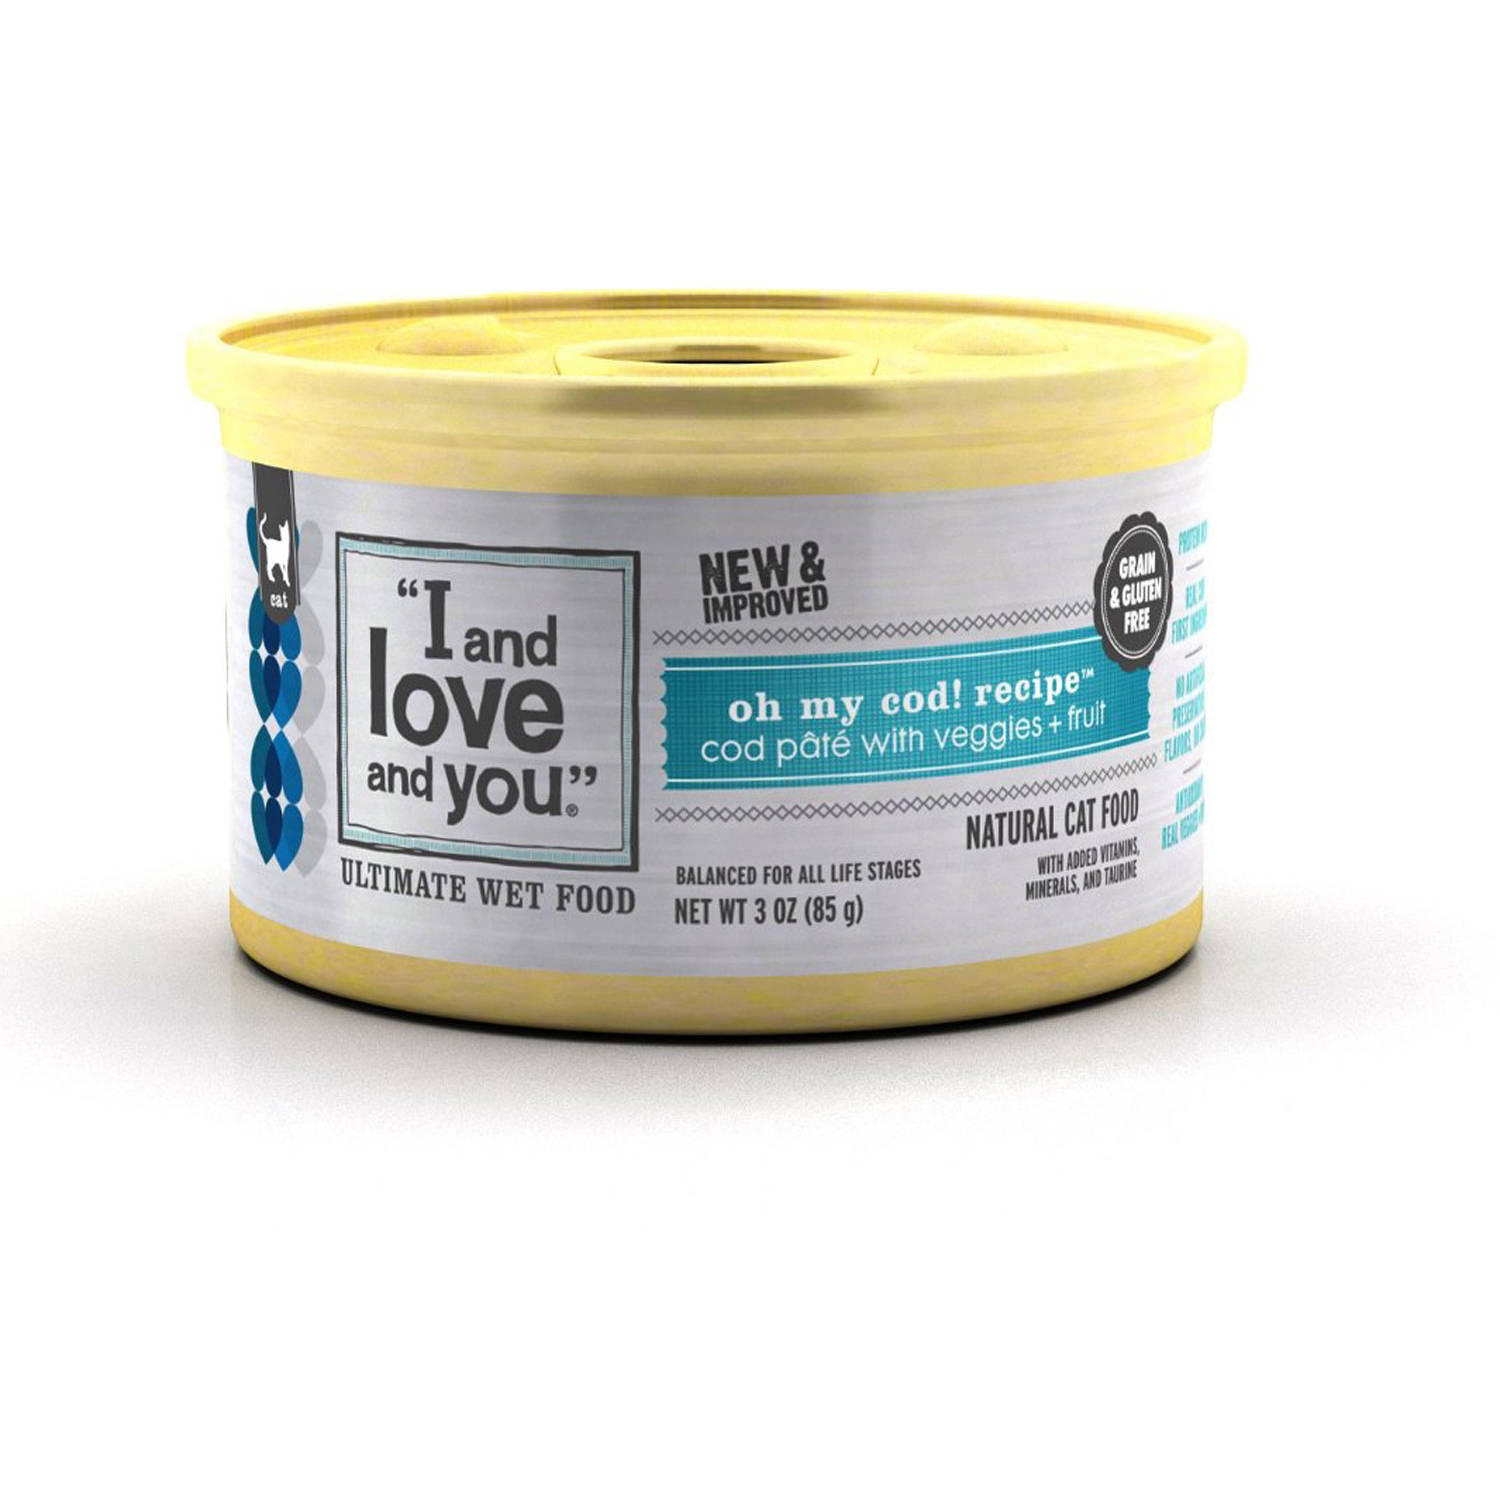 I And Love And You Oh My Cod! Pate Canned, 3 oz, 24-Pack